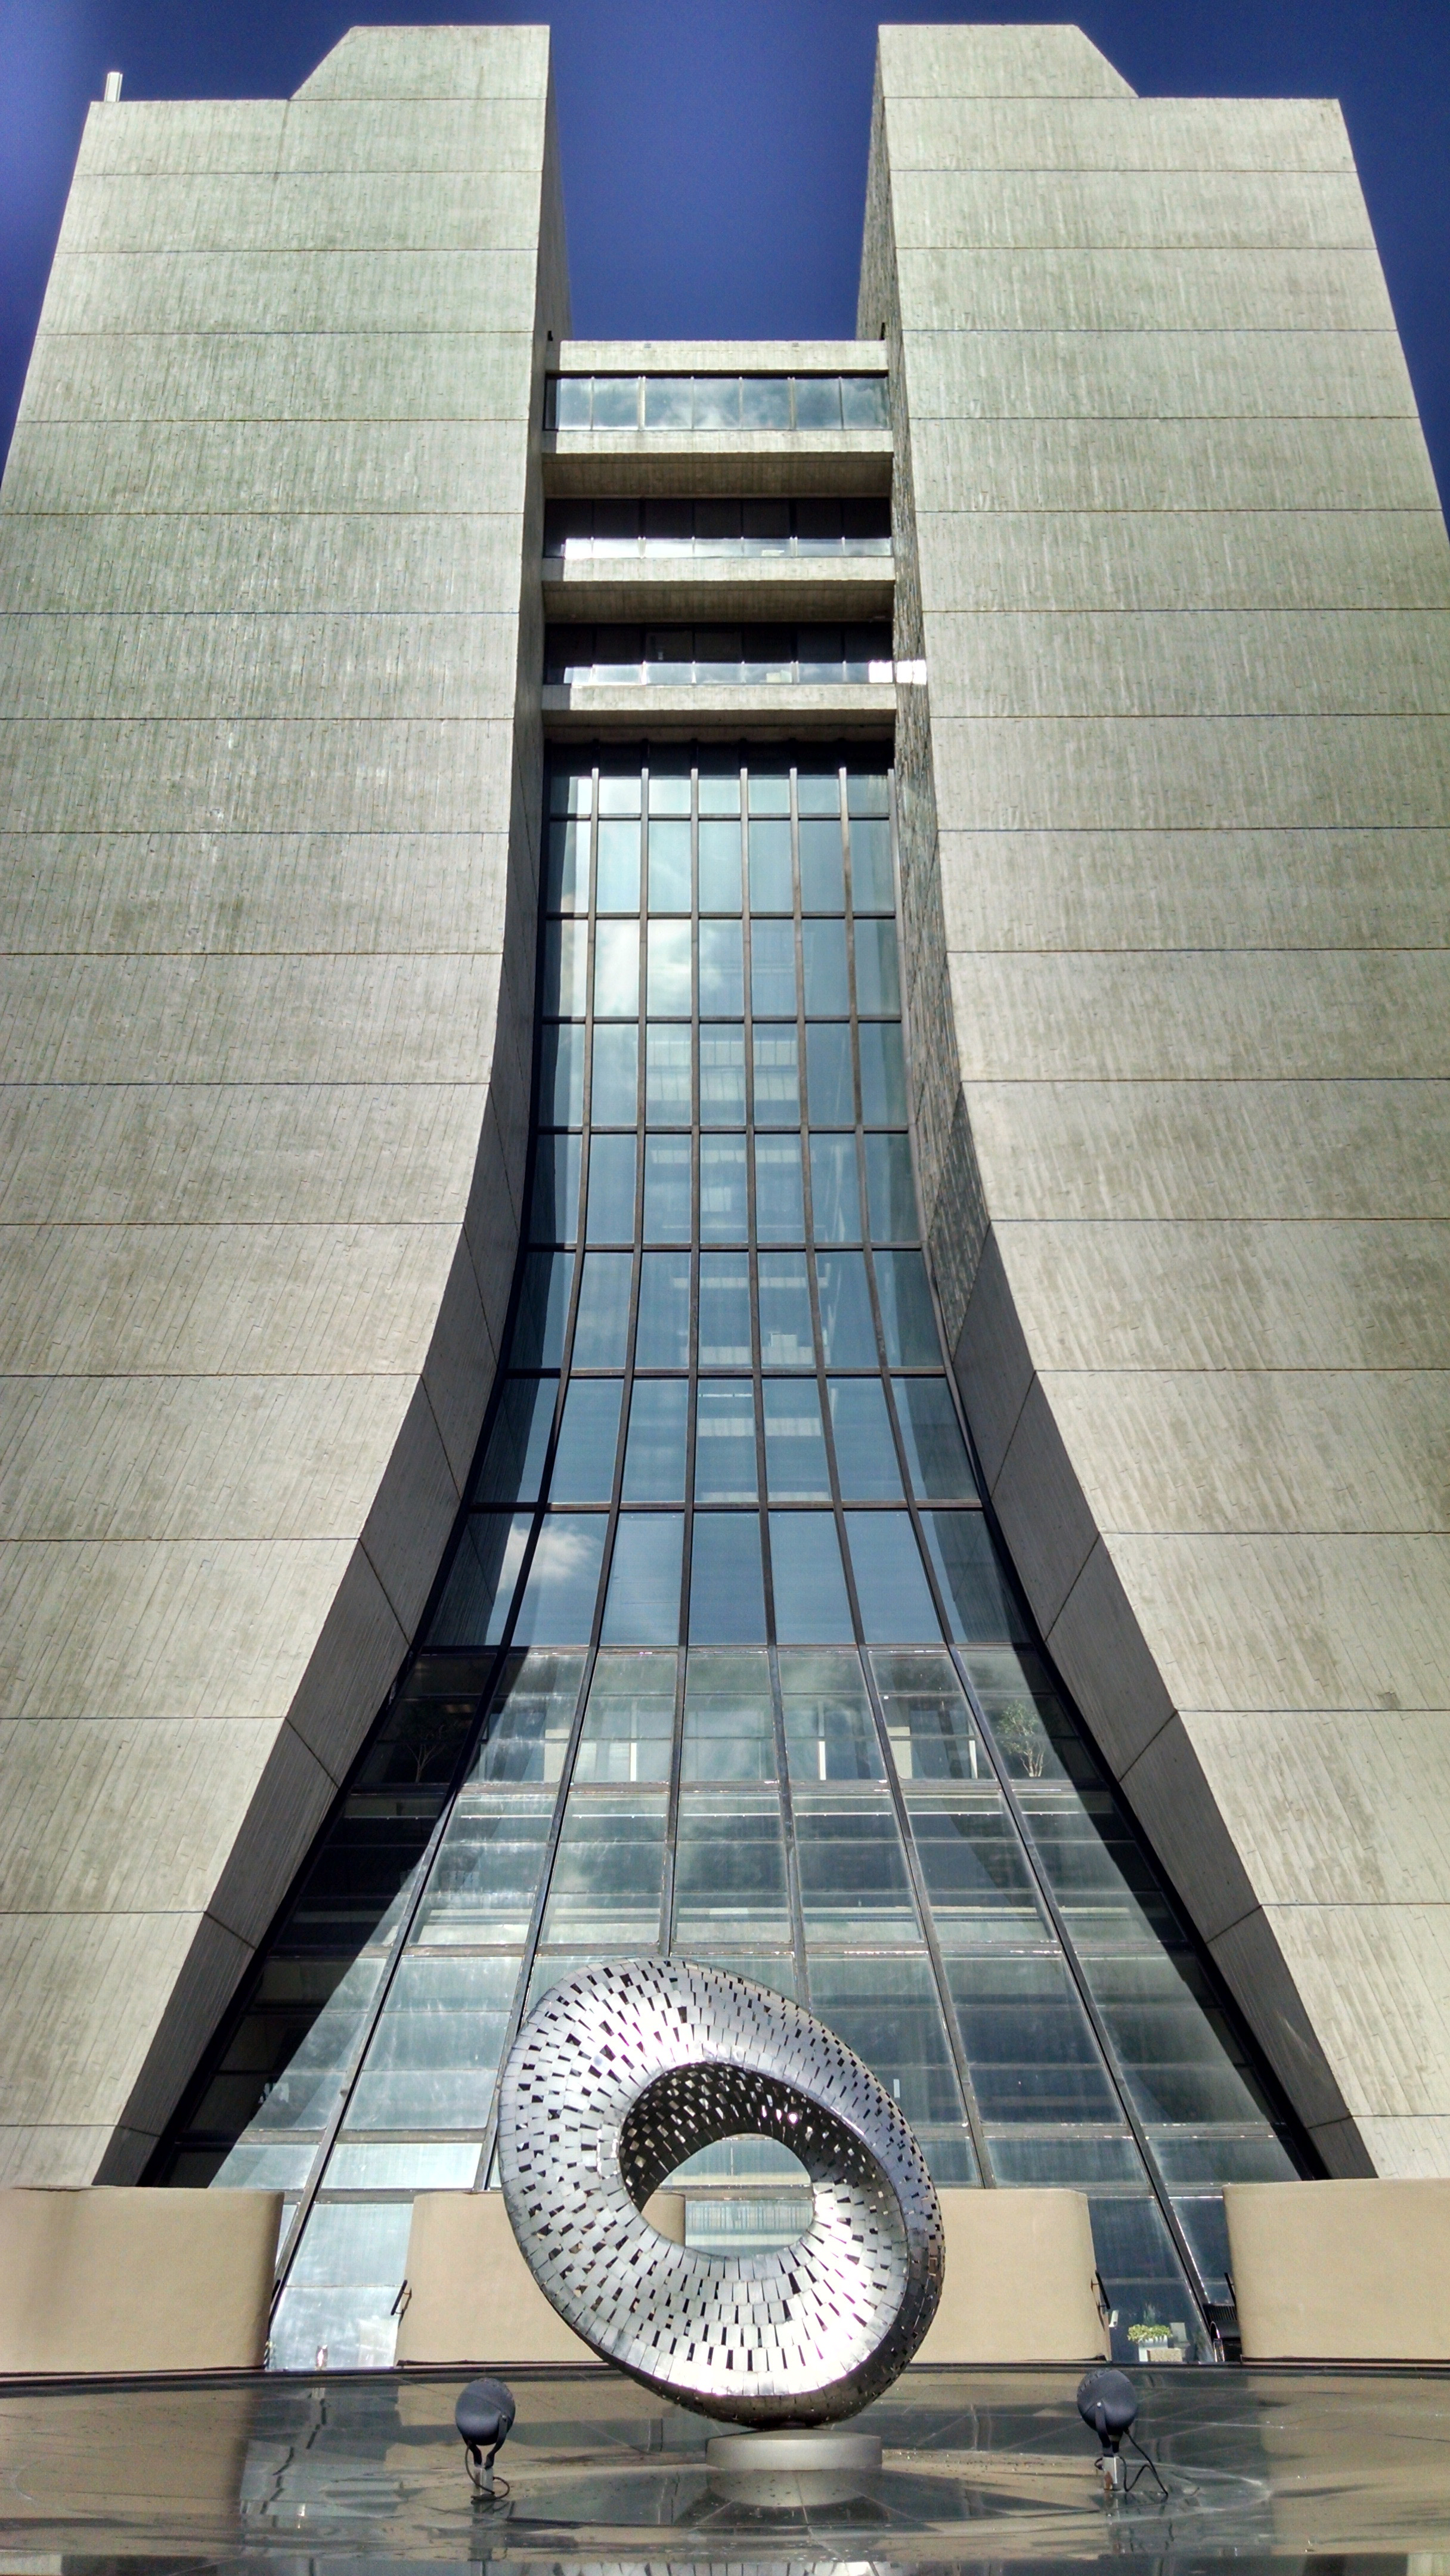 """Mobius Strip"" and the windows of Wilson Hall gleam in the sunlight."